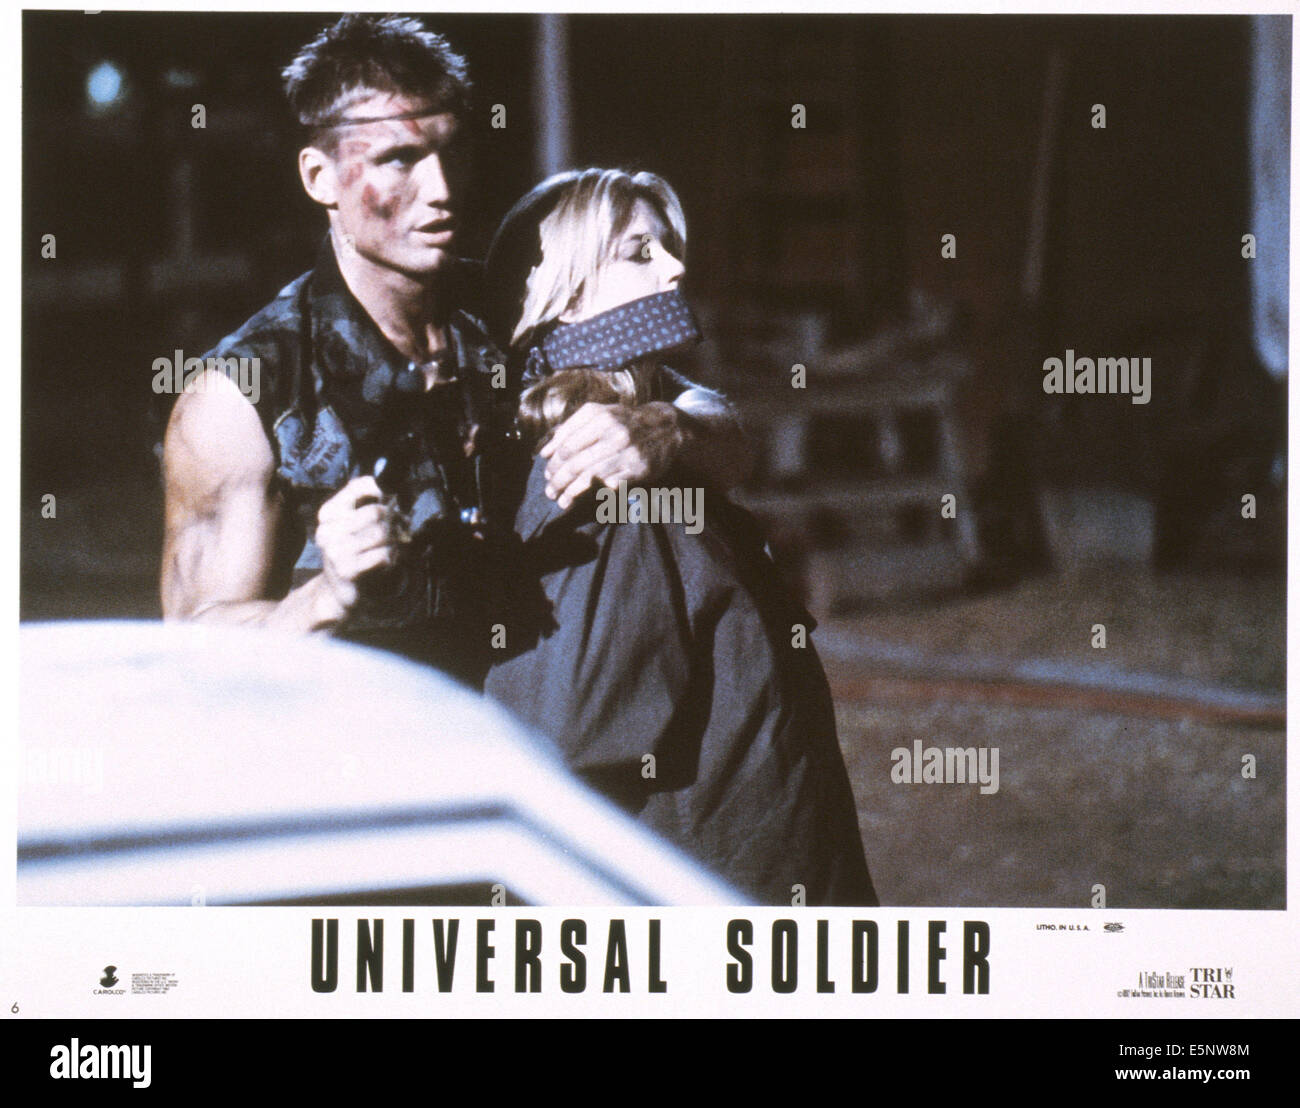 In search of a universal soldier, 1941, USA